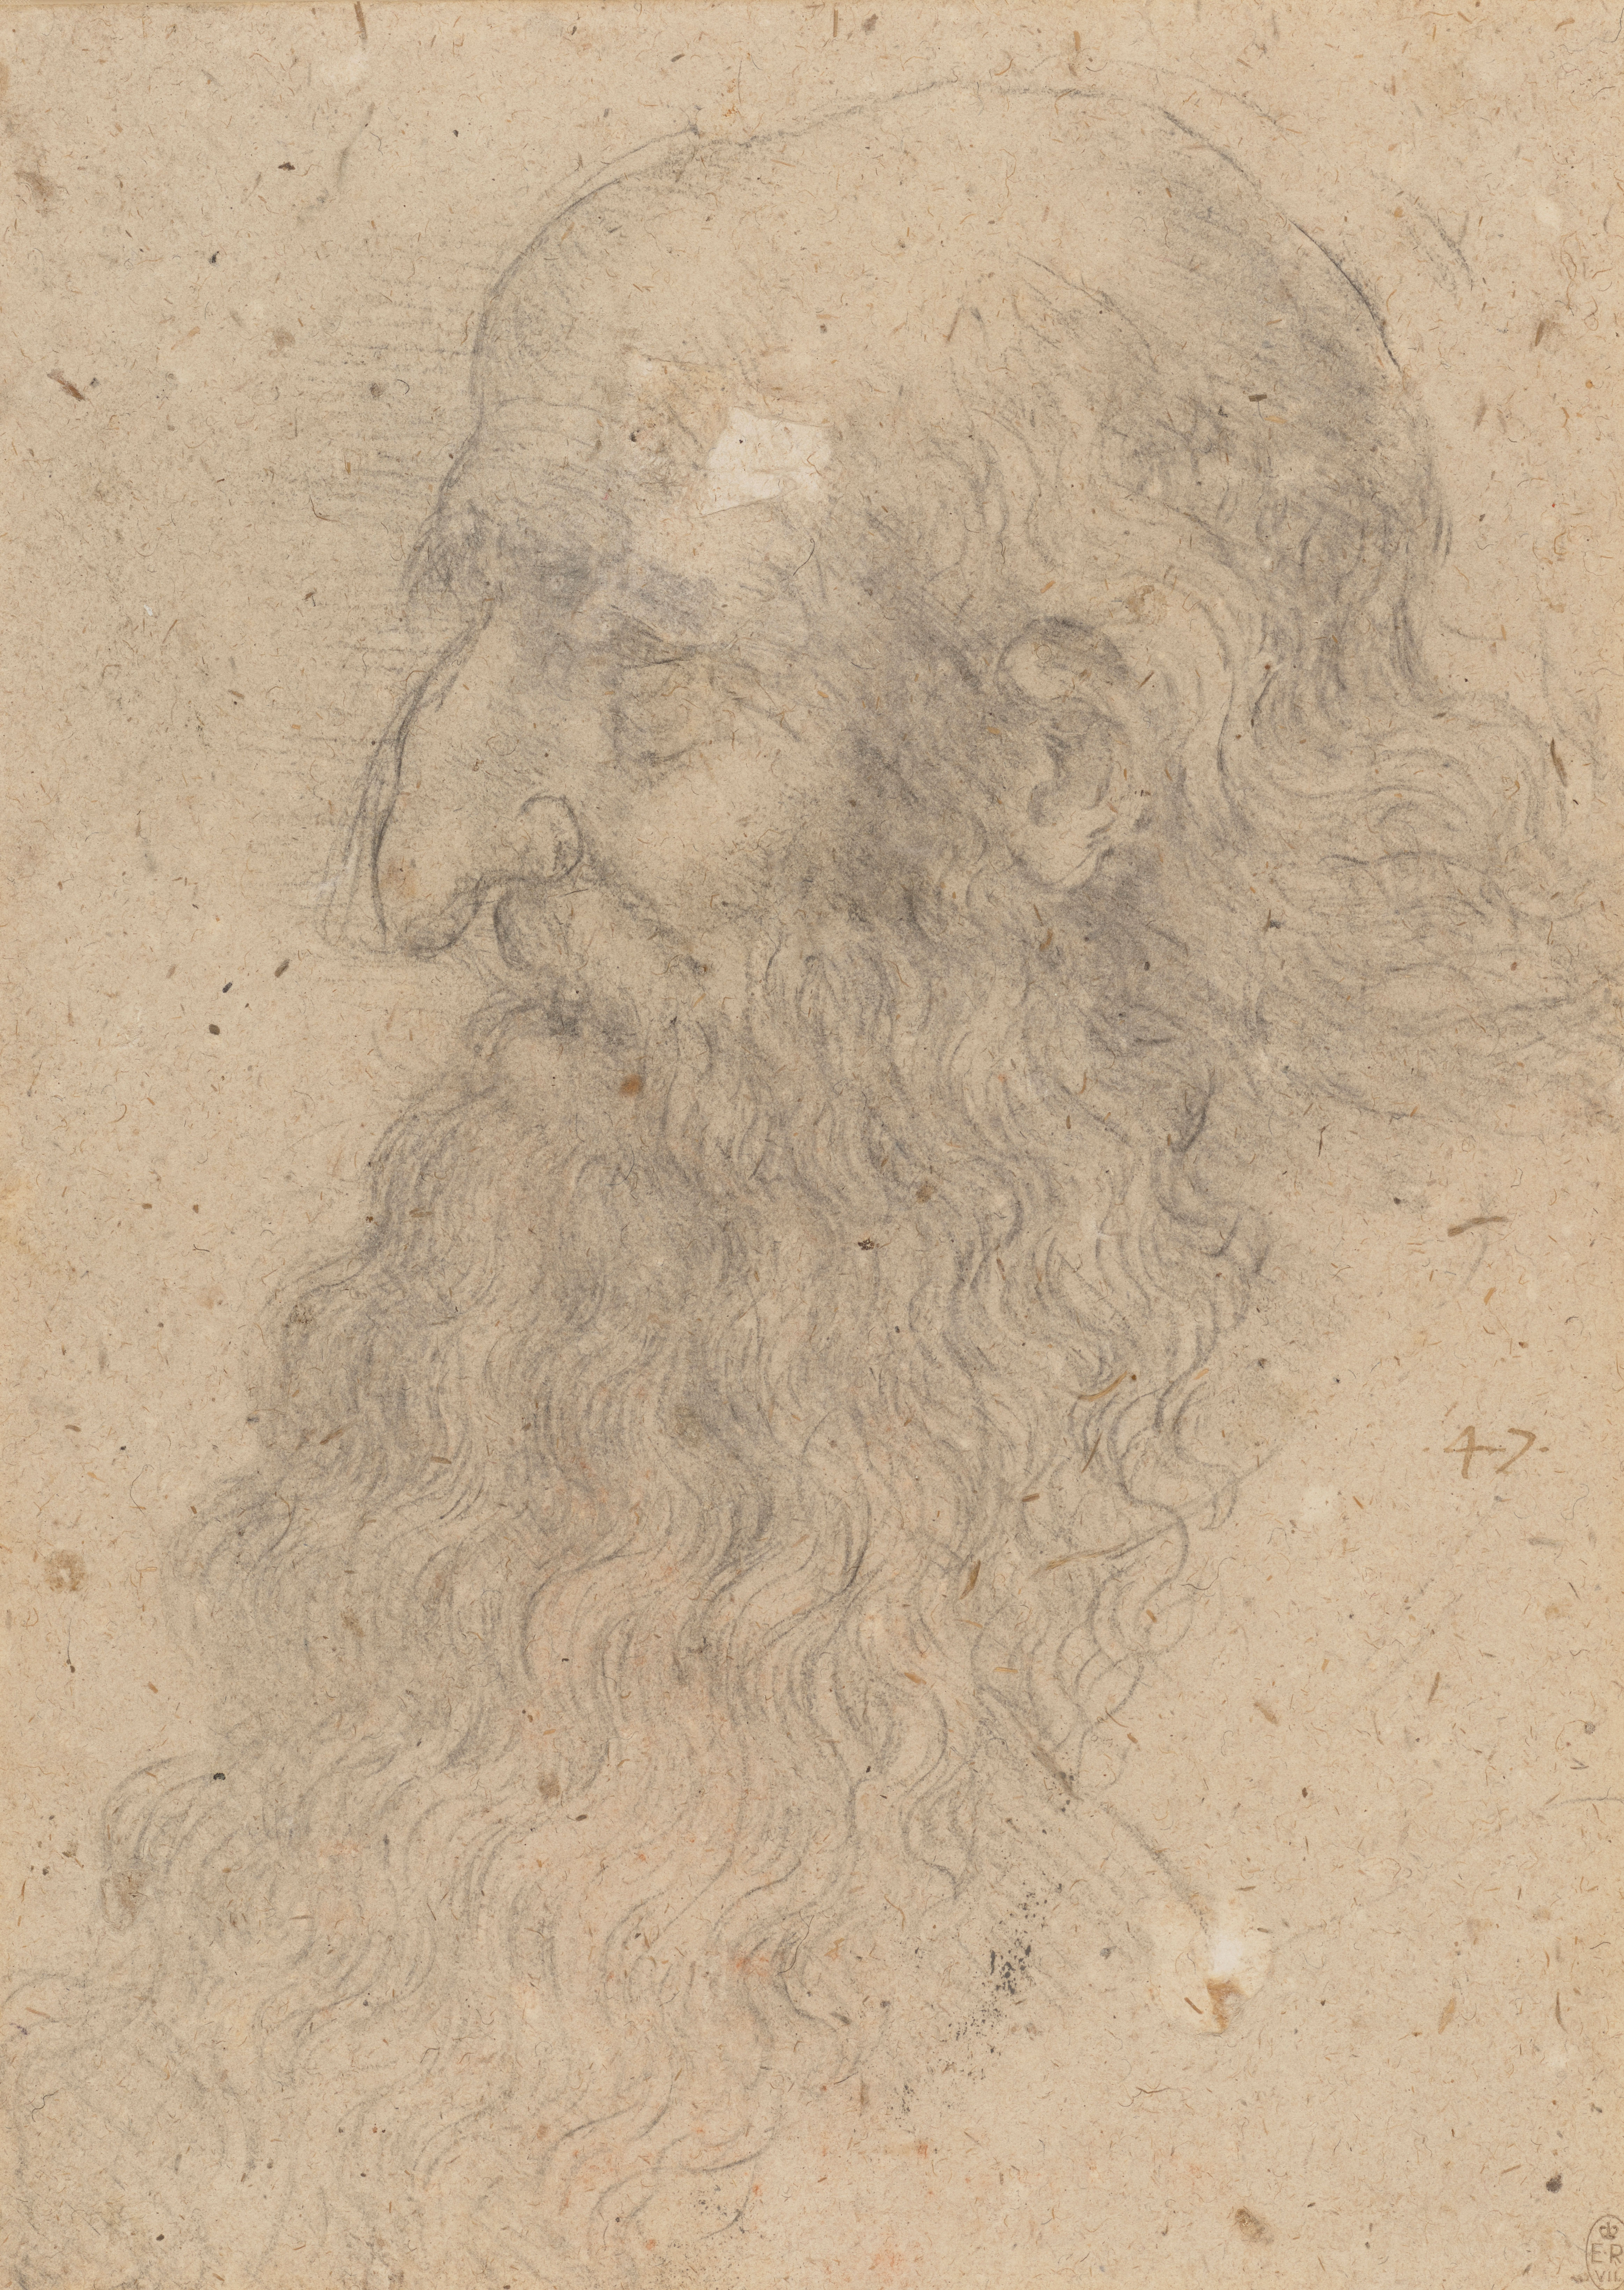 Leonardo da Vinci, 'The head of an old bearded man in profile', c.1519